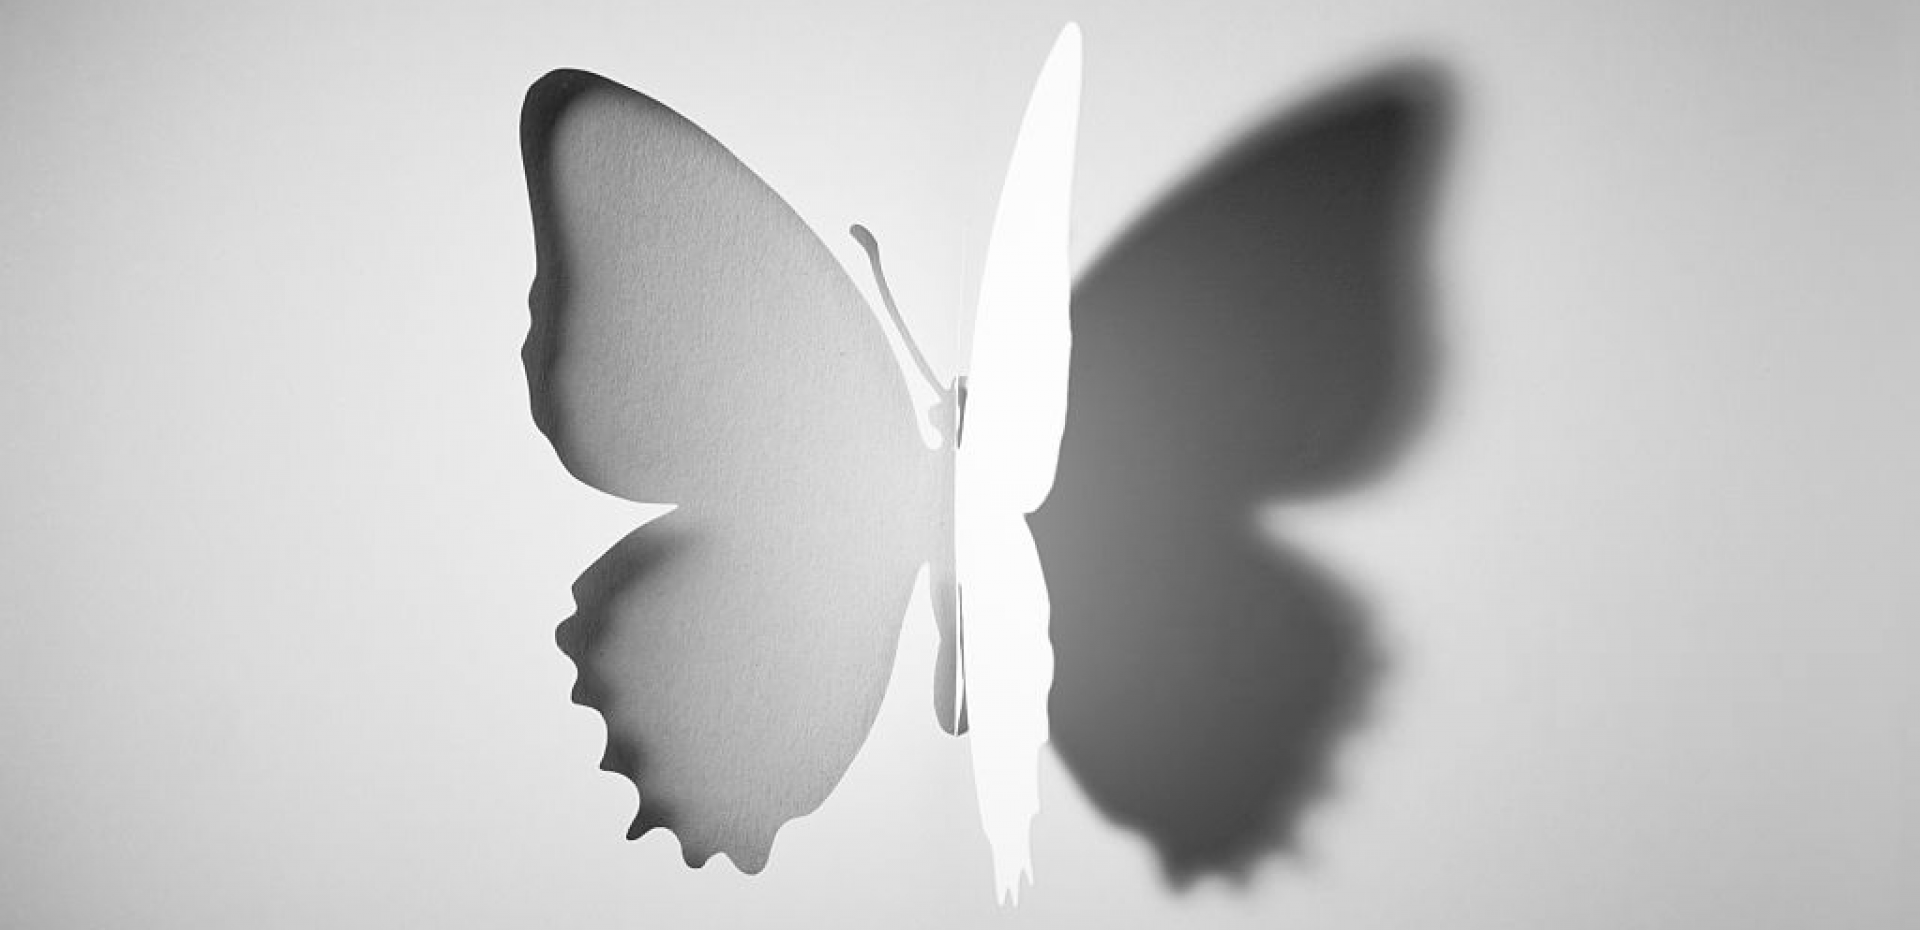 https://www.toyacreatives.com/wp-content/uploads/2019/10/cropped-butterfly.png